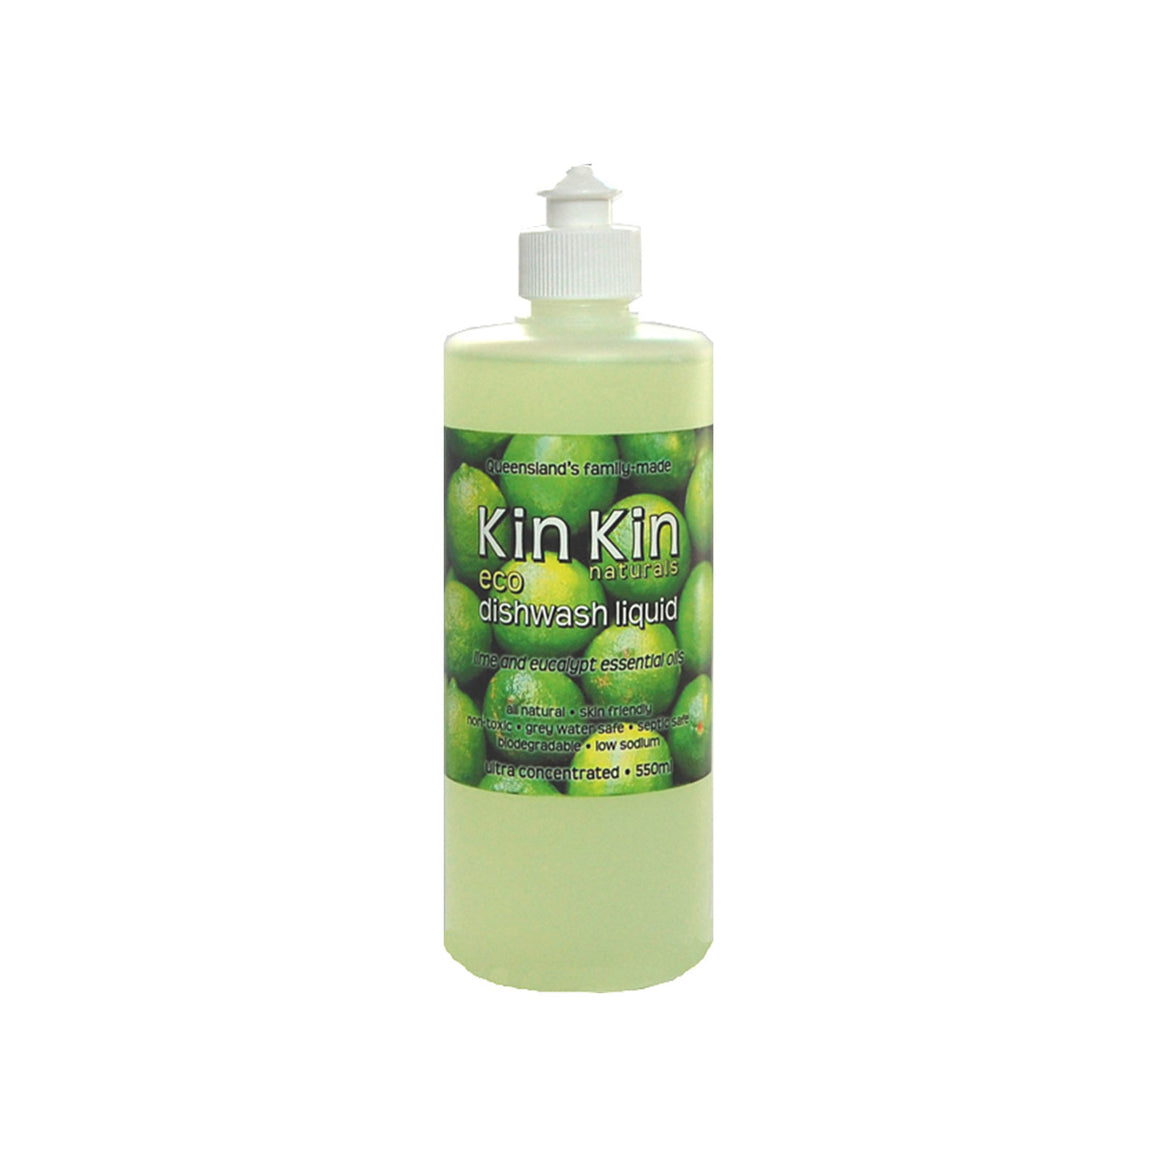 Kin Kin Naturals Dishwash Liquid Lime - 550ml